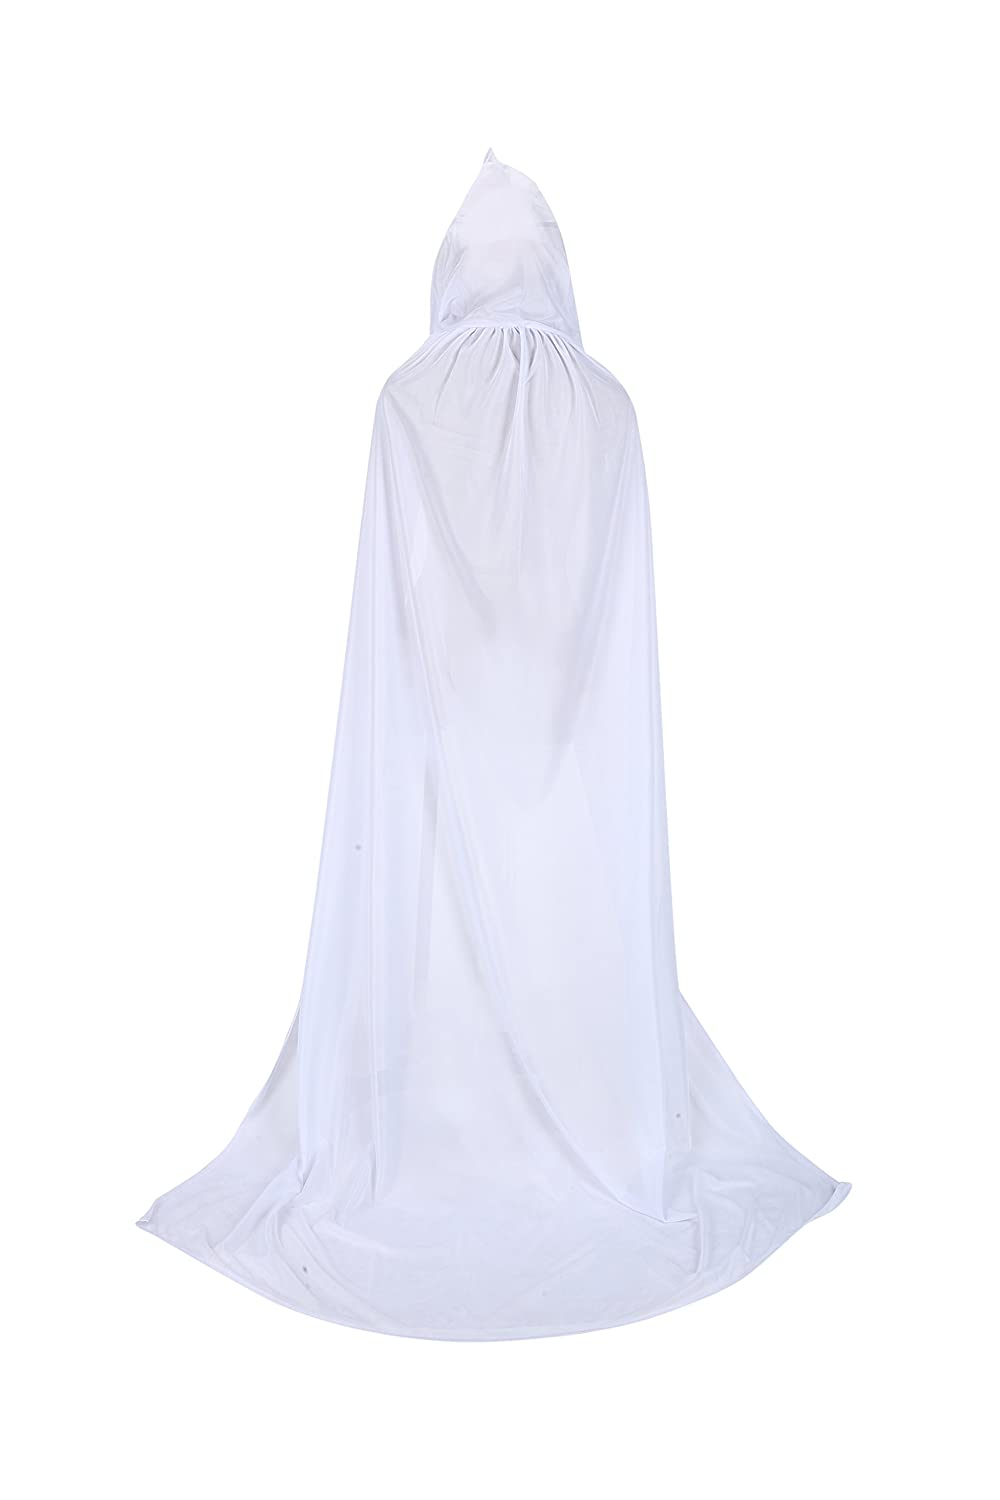 TULIPTREND Full Length Hooded Cloak Christmas Halloween Cosplay Costume Party Cape